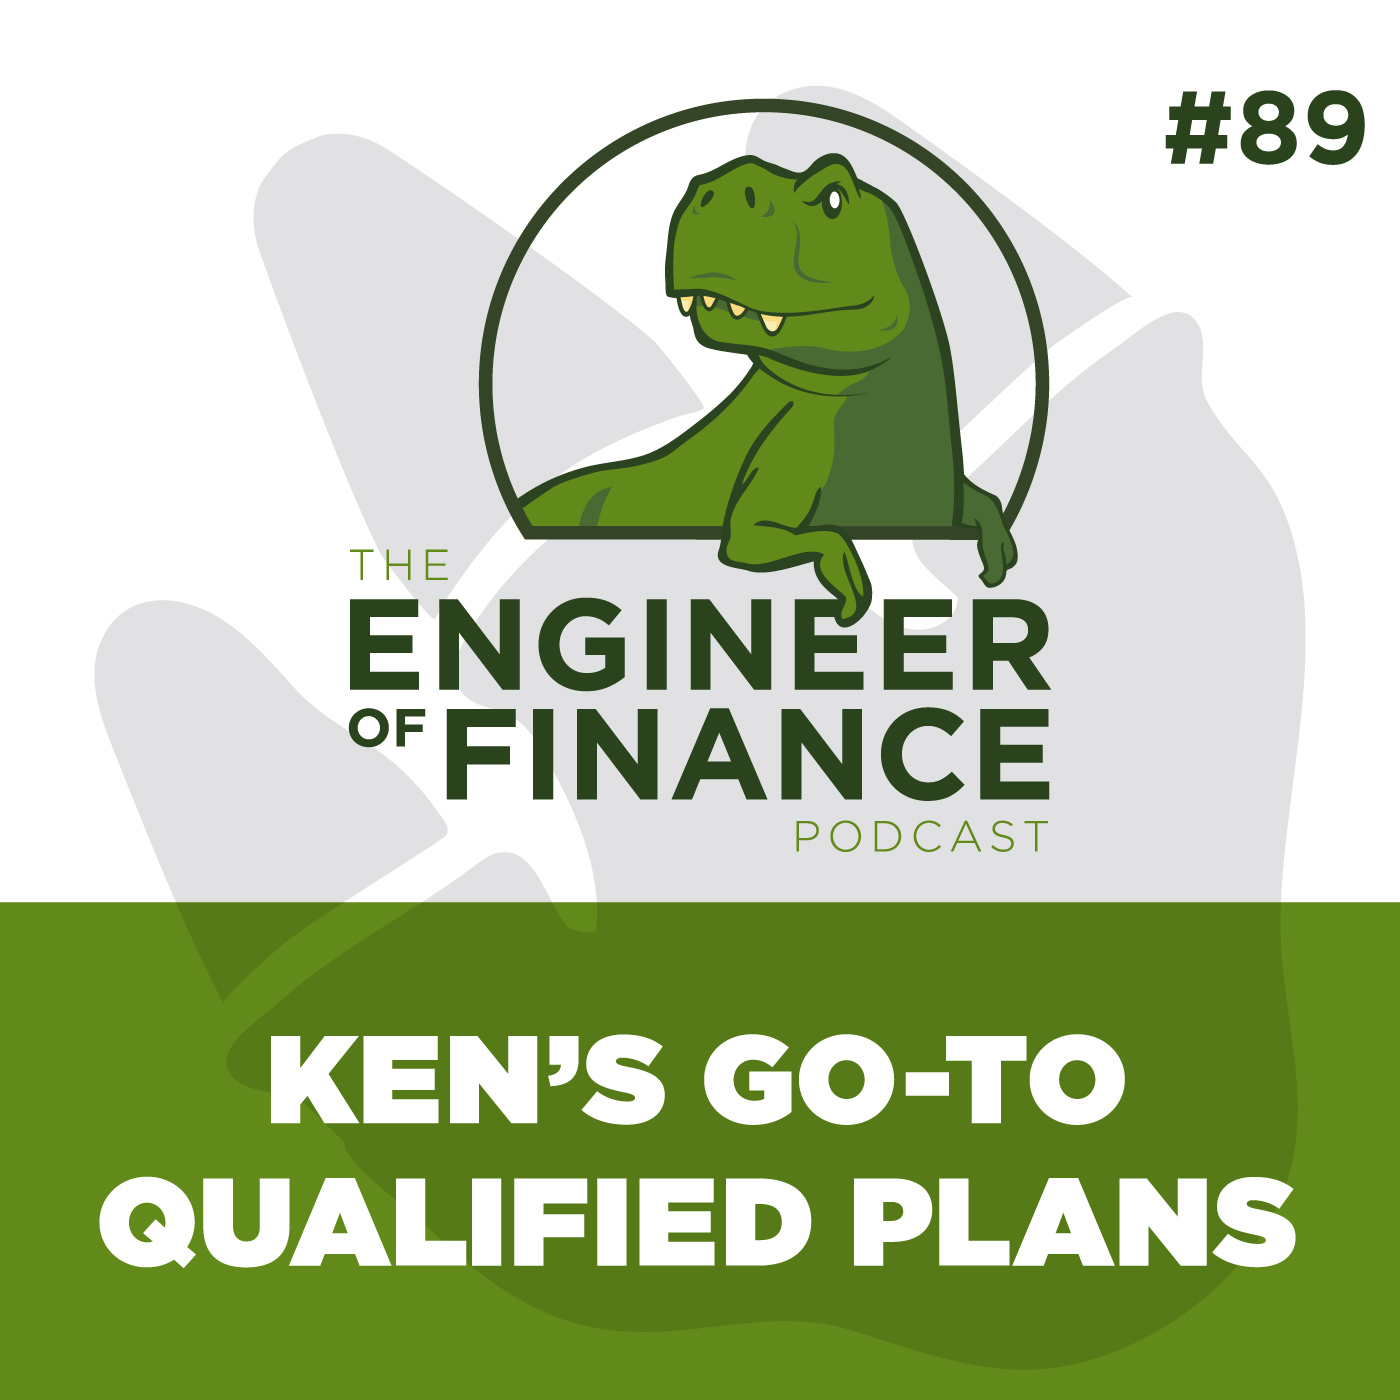 Ken's Go-To Qualified Plans – Episode 89